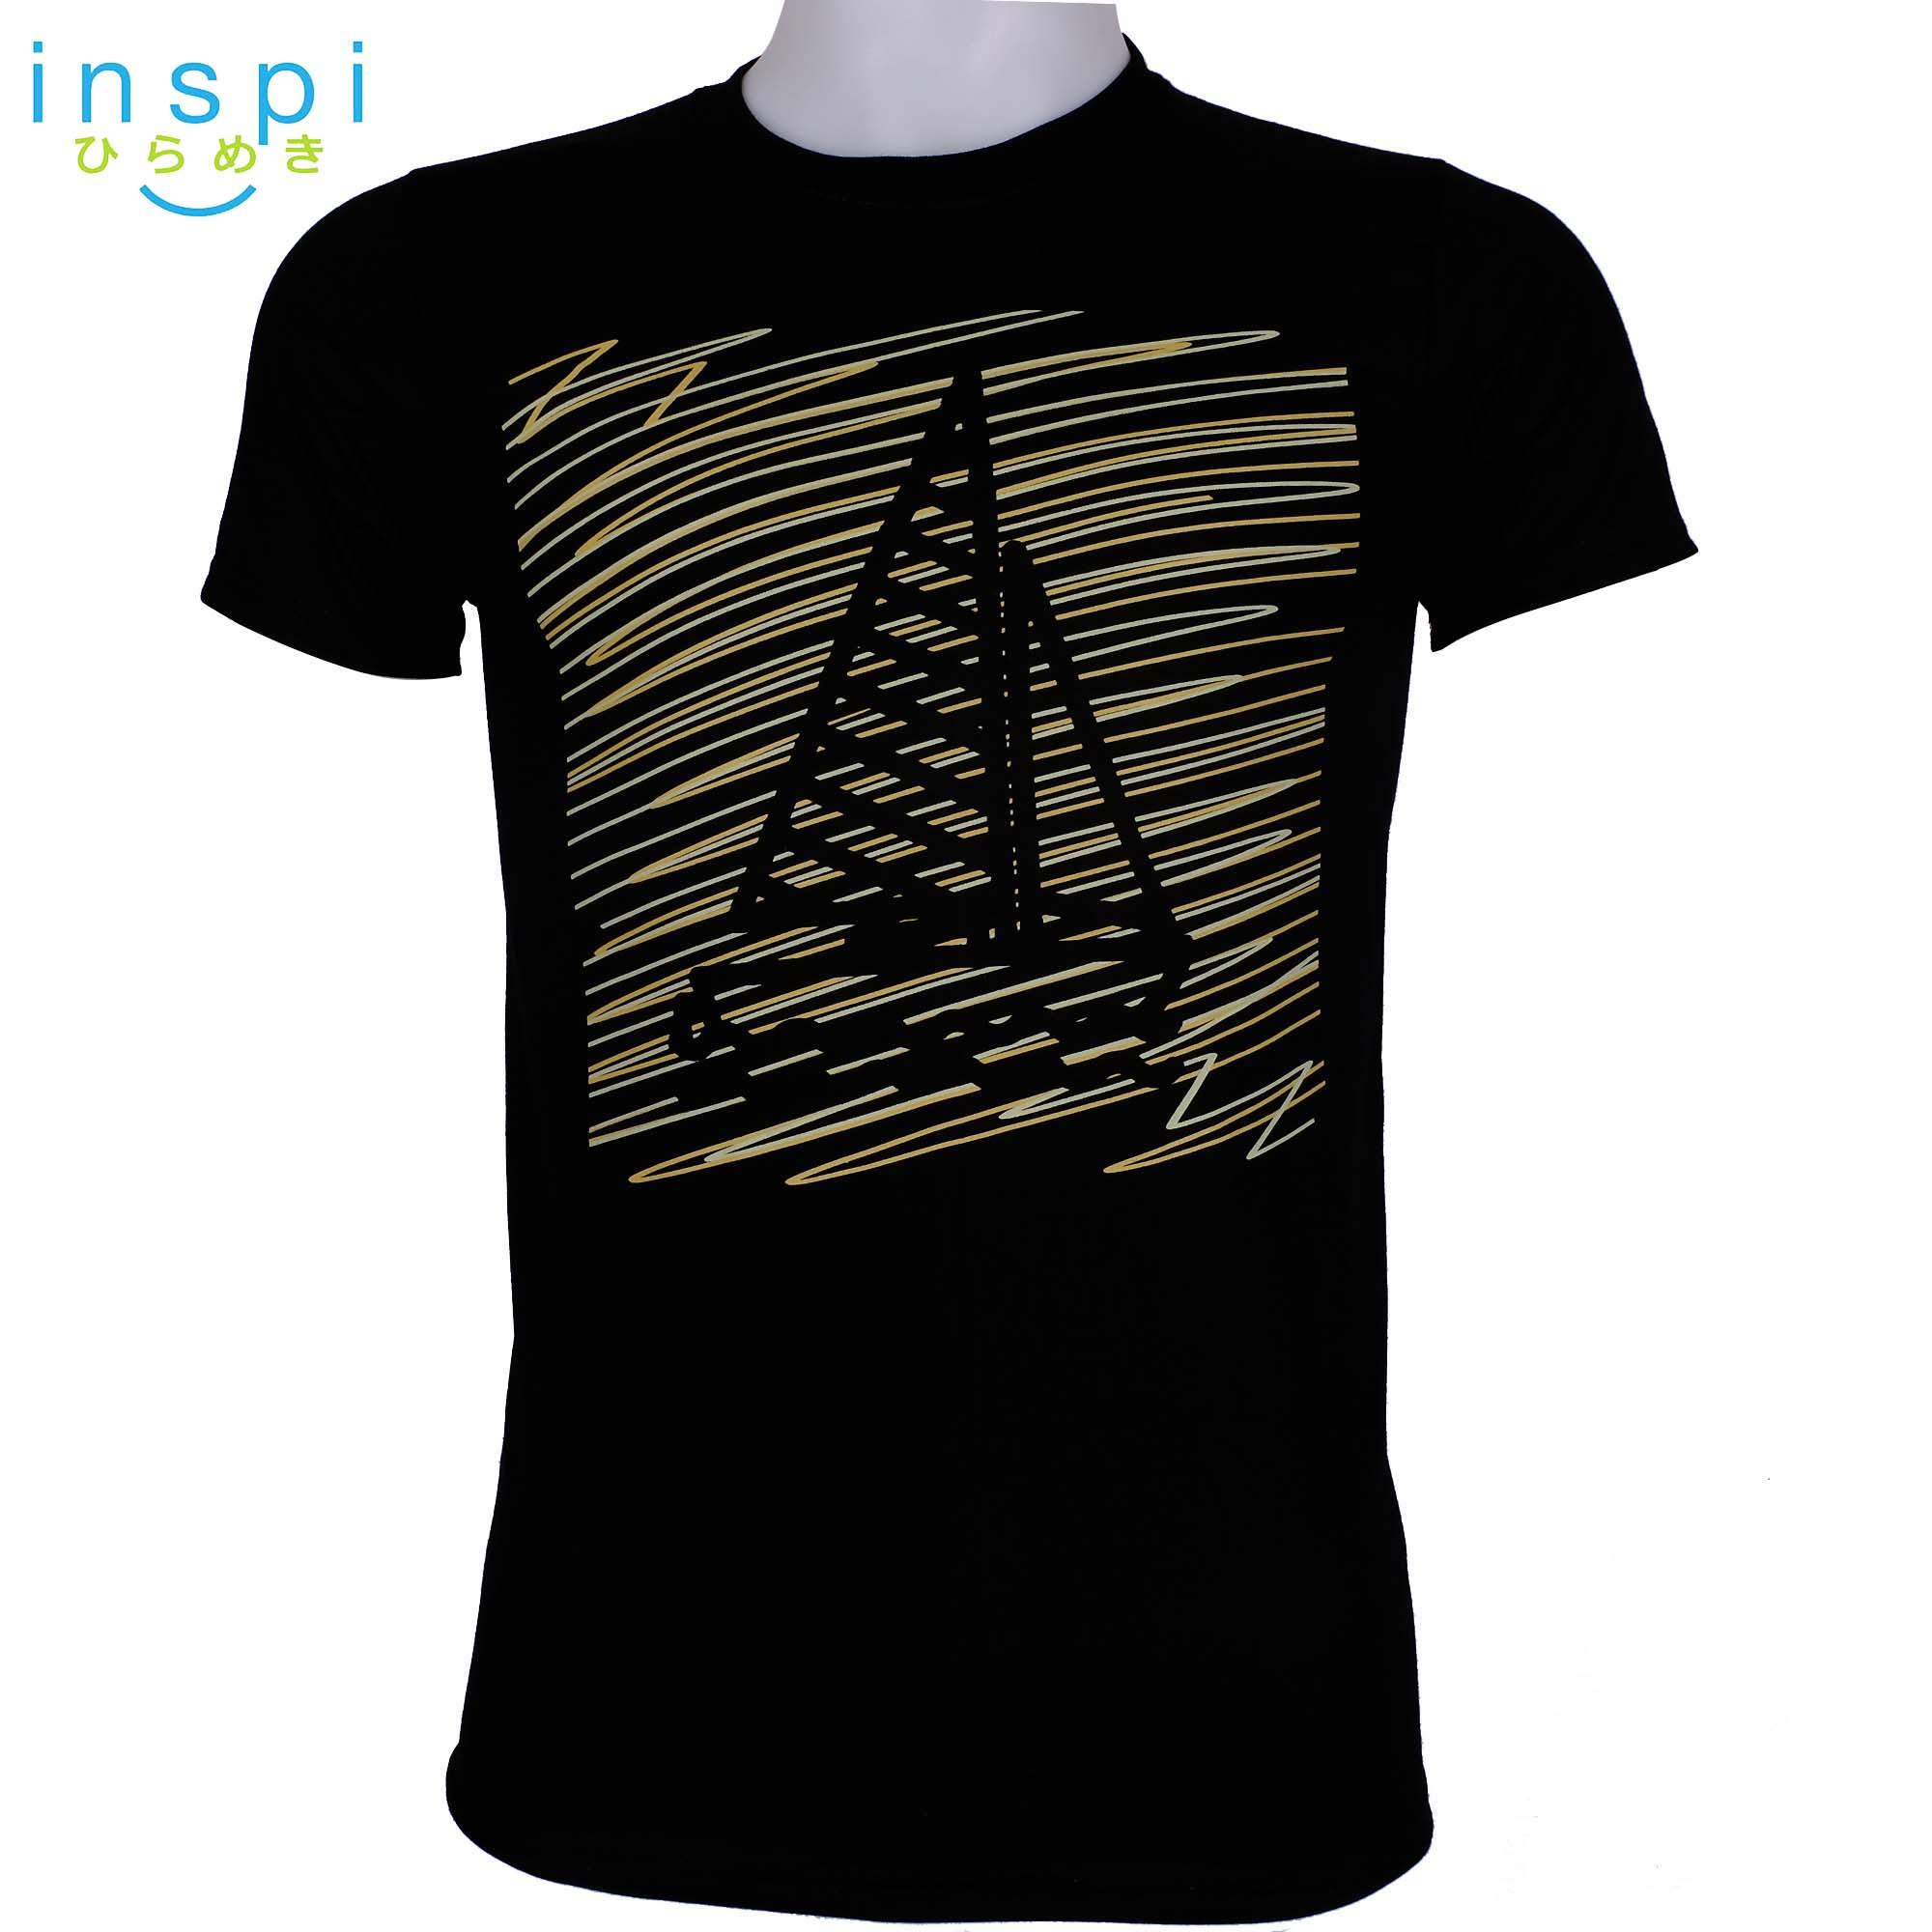 4eb03fa6e INSPI Tees Doodle Boat (Black) tshirt printed graphic tee Mens t shirt  shirts for